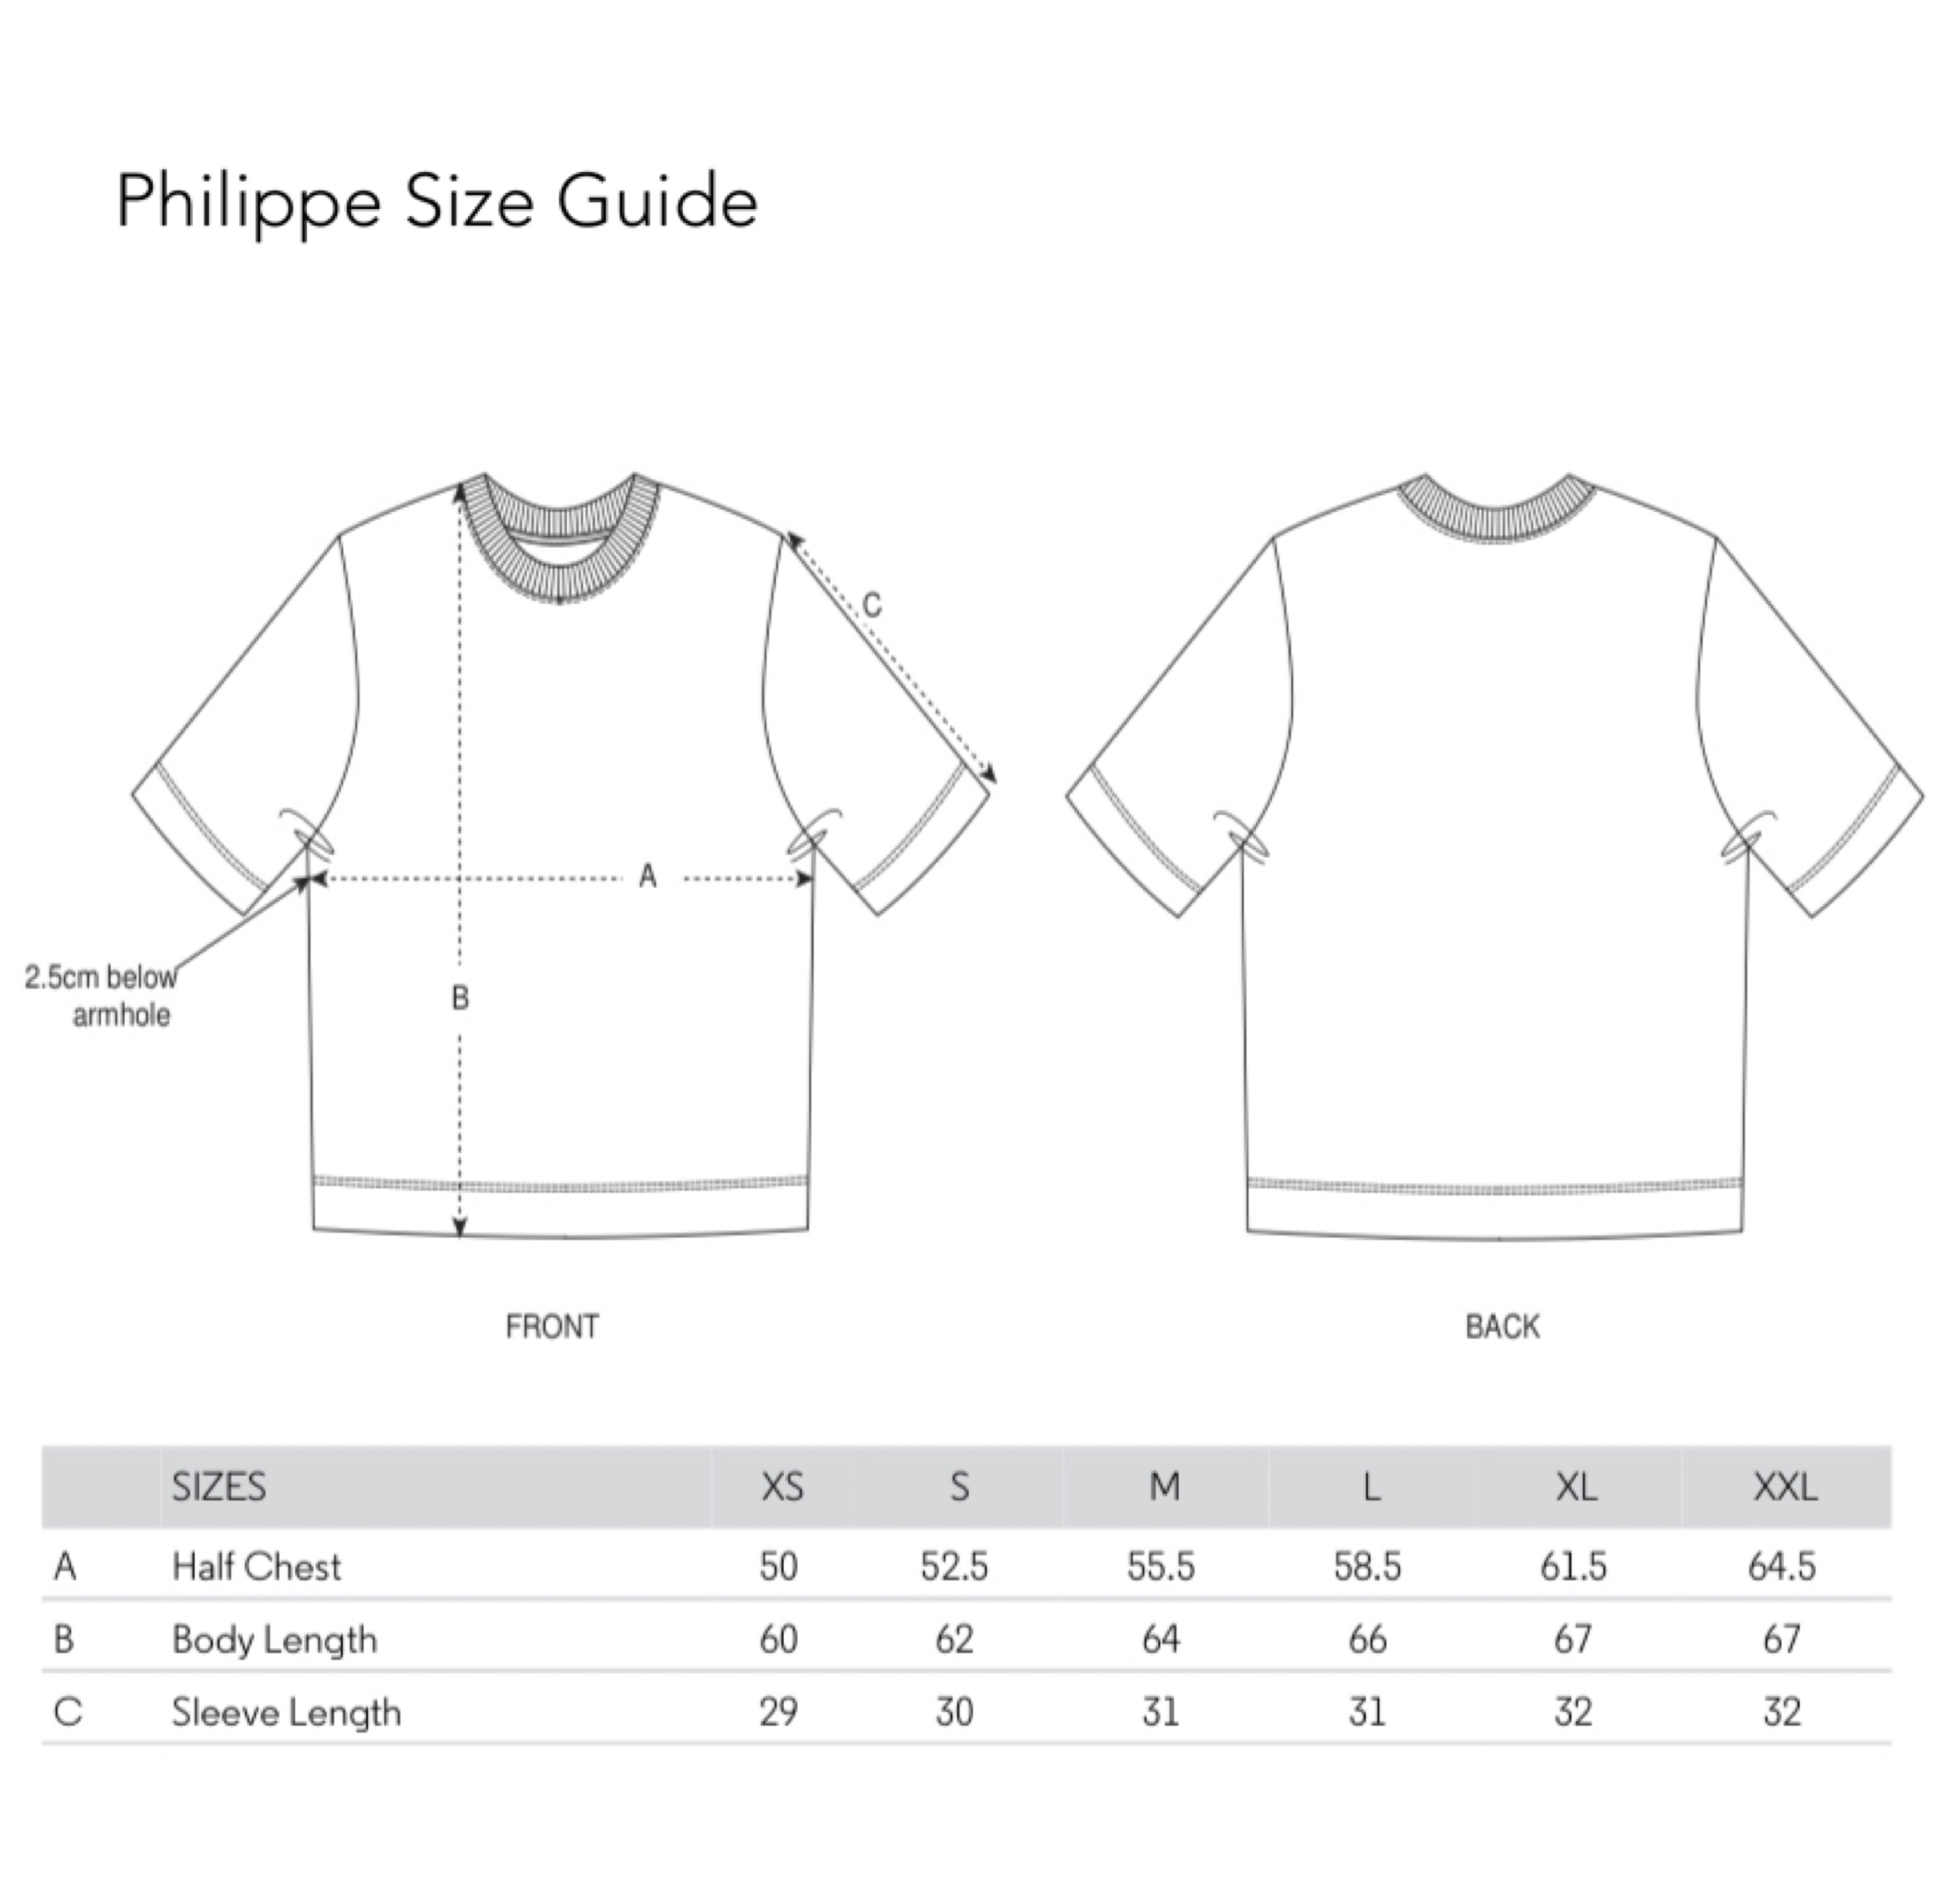 Philippe Size Guide